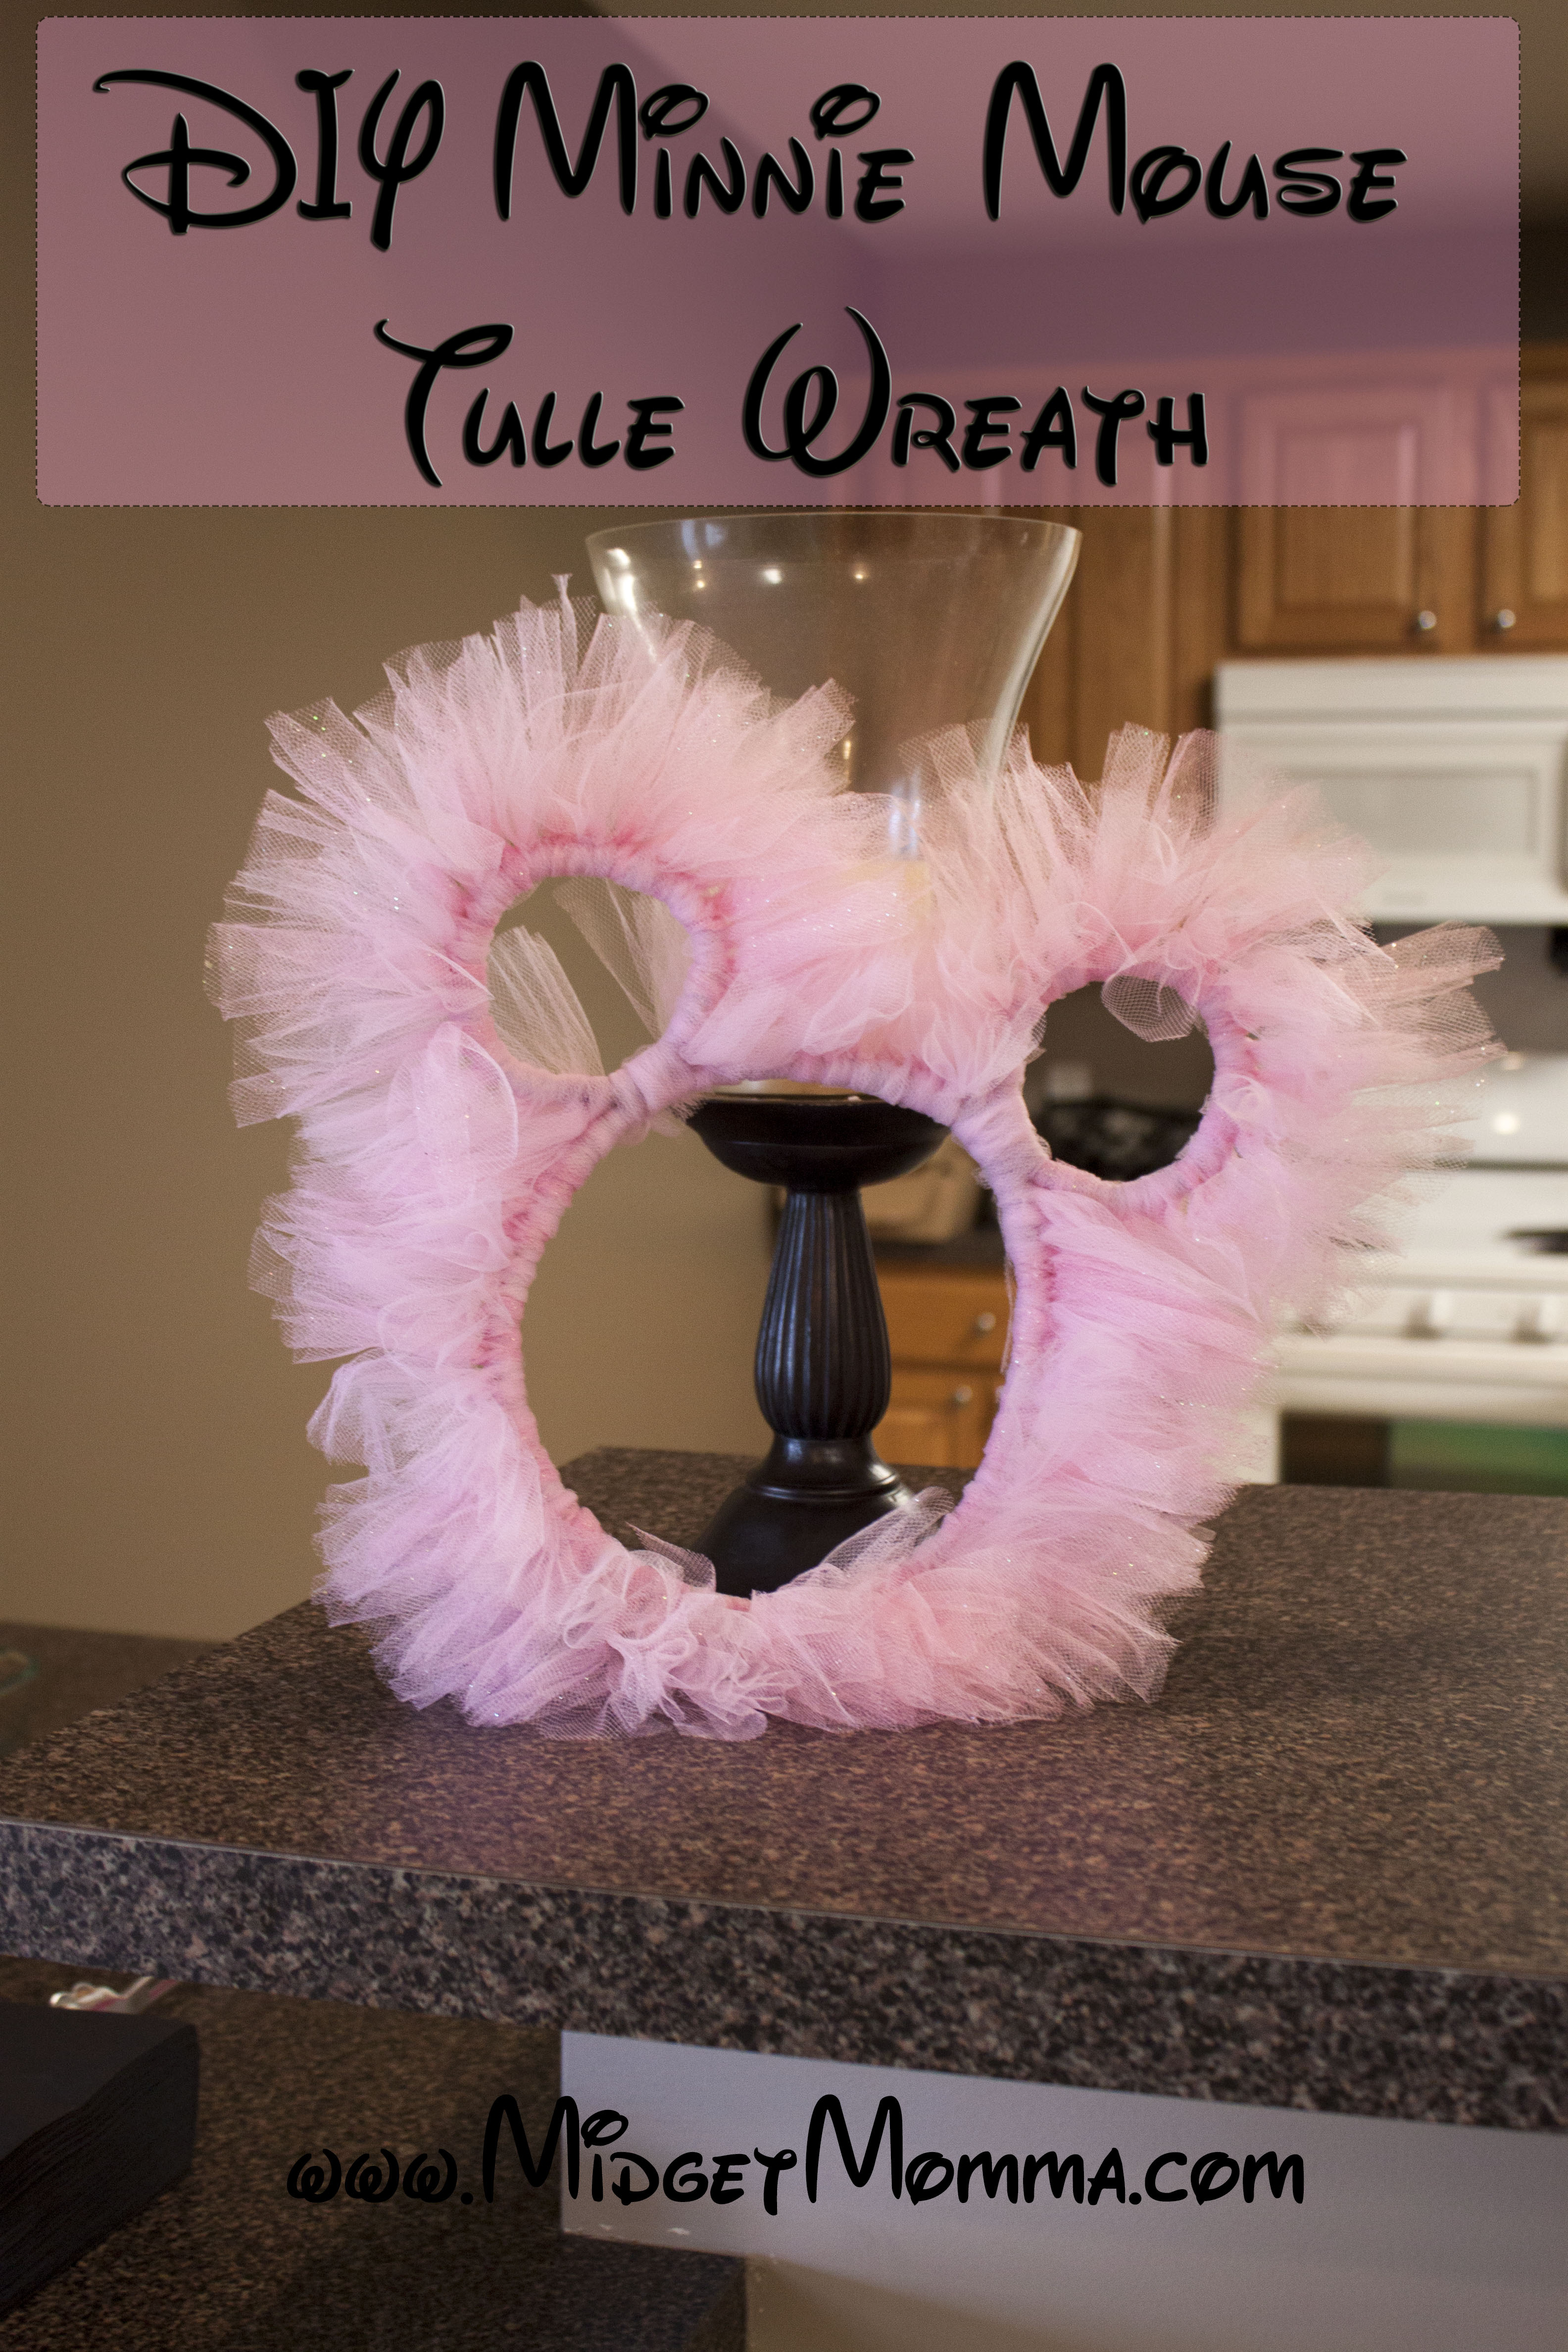 Disney Mickey Minnie And Diy Minnie Mouse Tulle Wreath